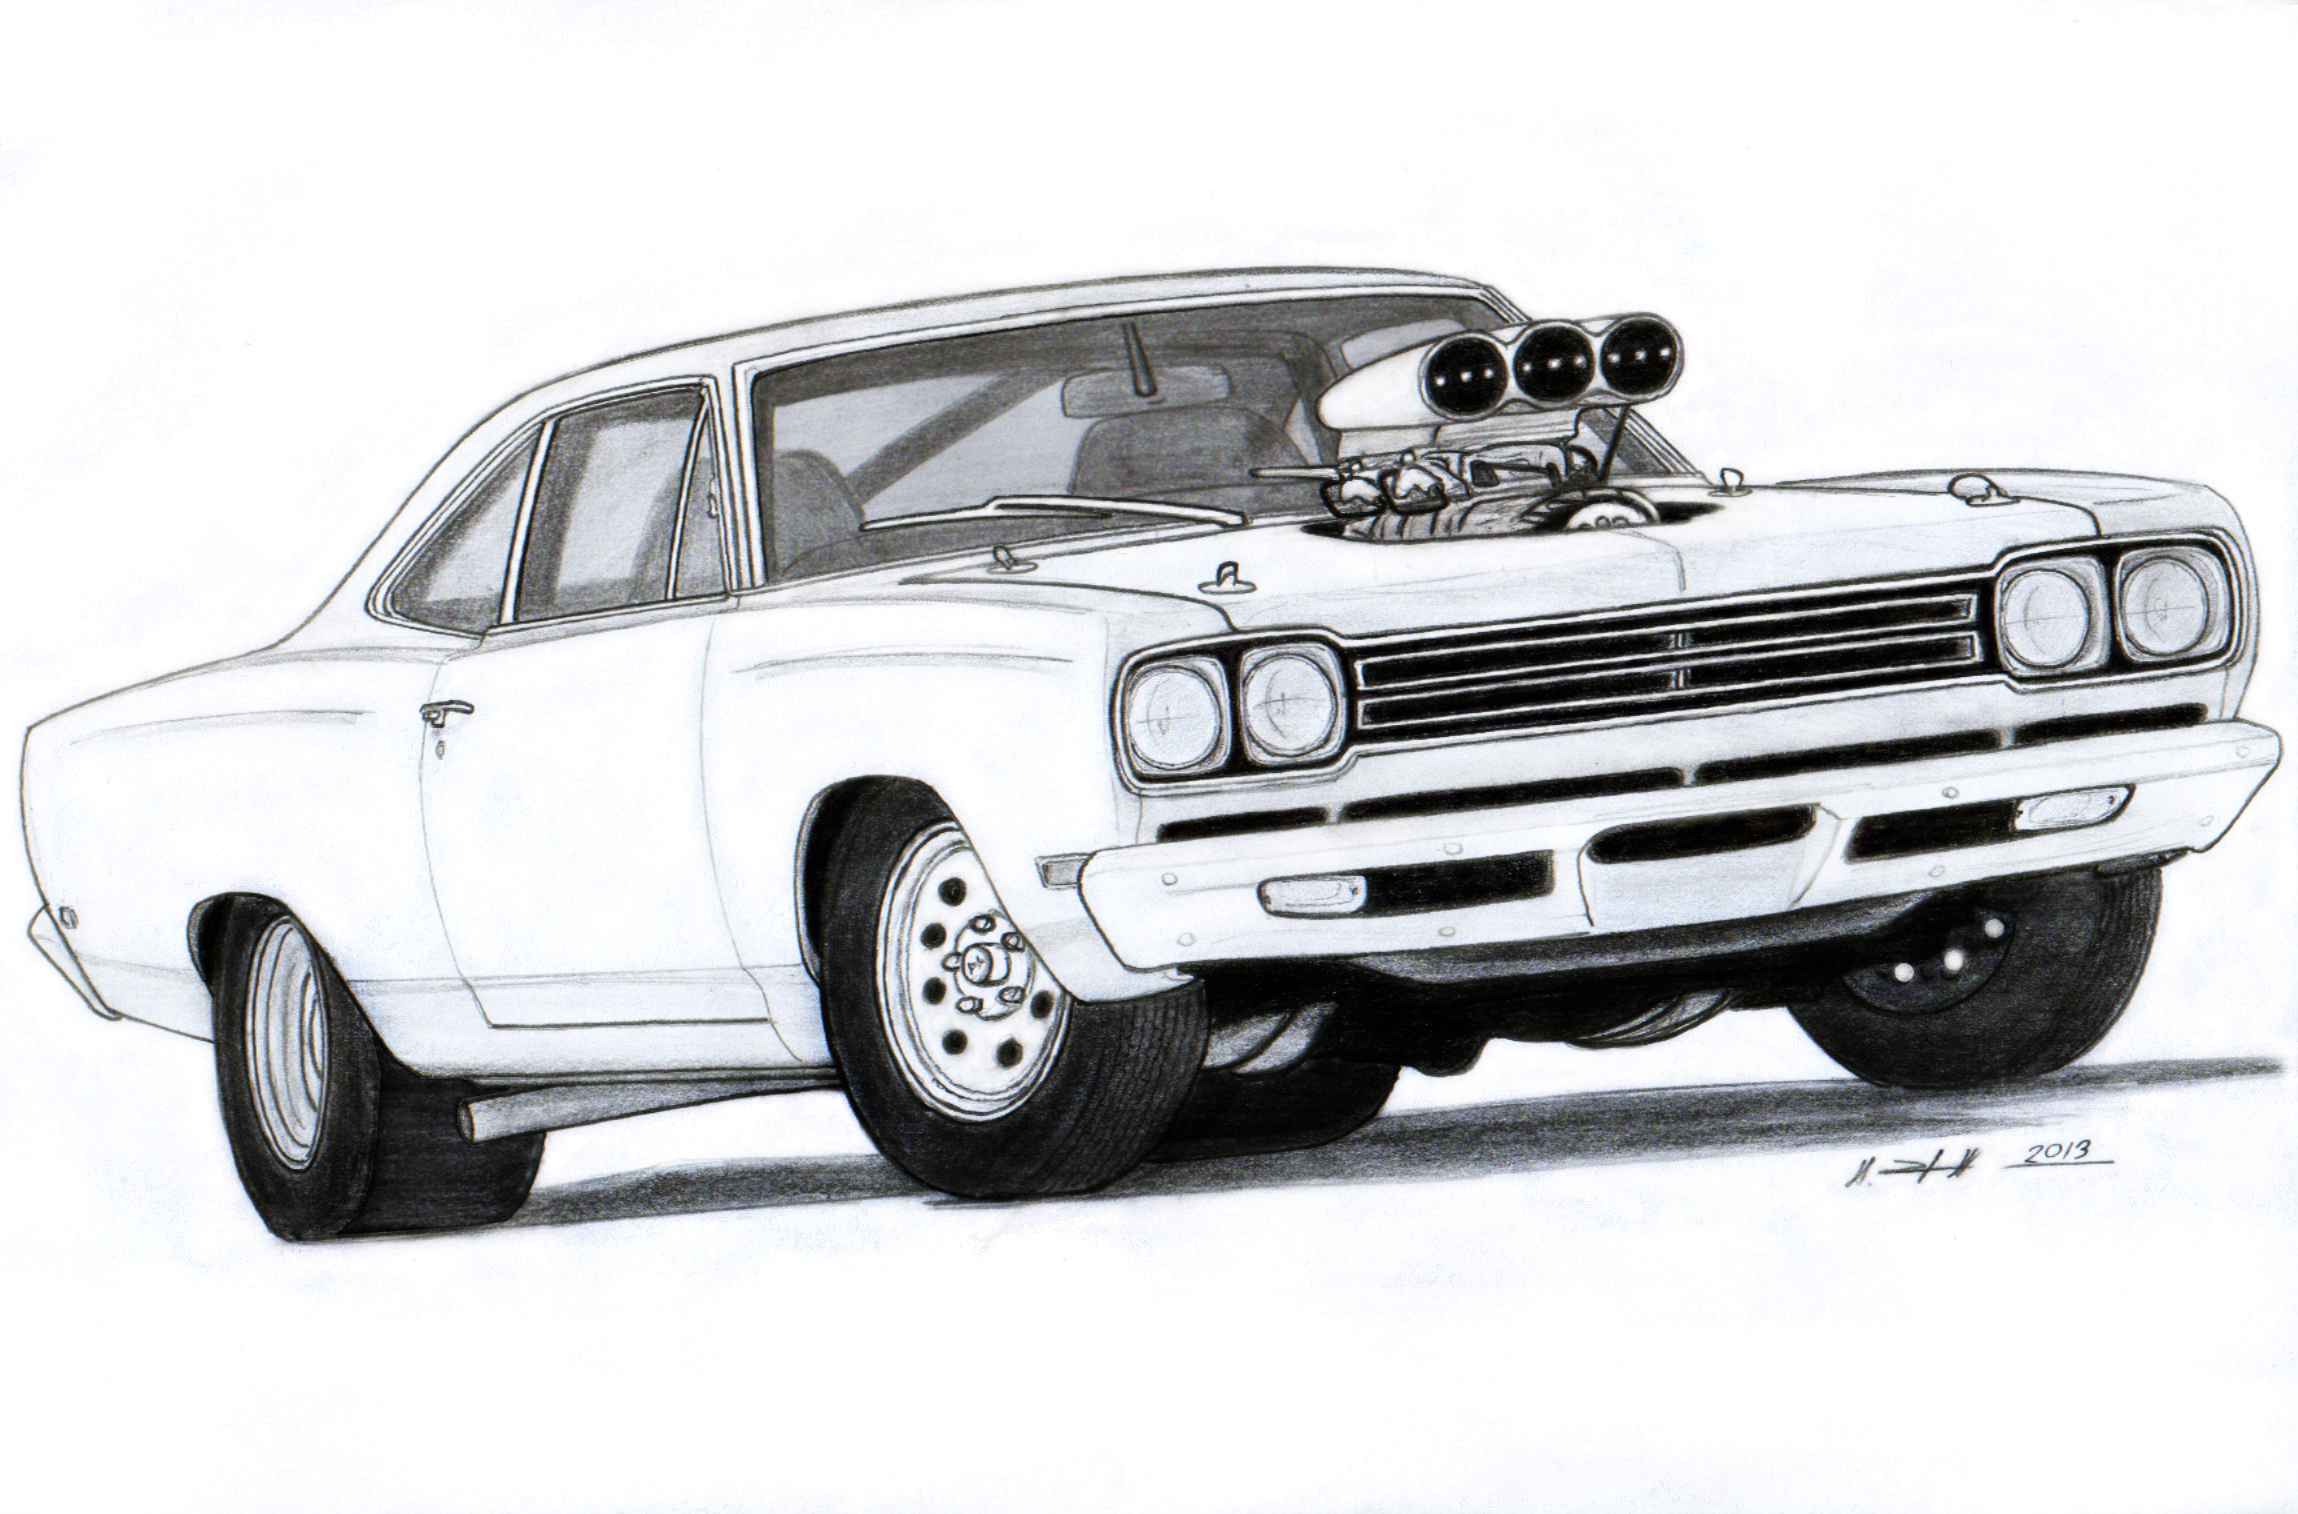 Drawn vehicle dodge Plymouth Plymouth Drawing deviantart Roadrunner